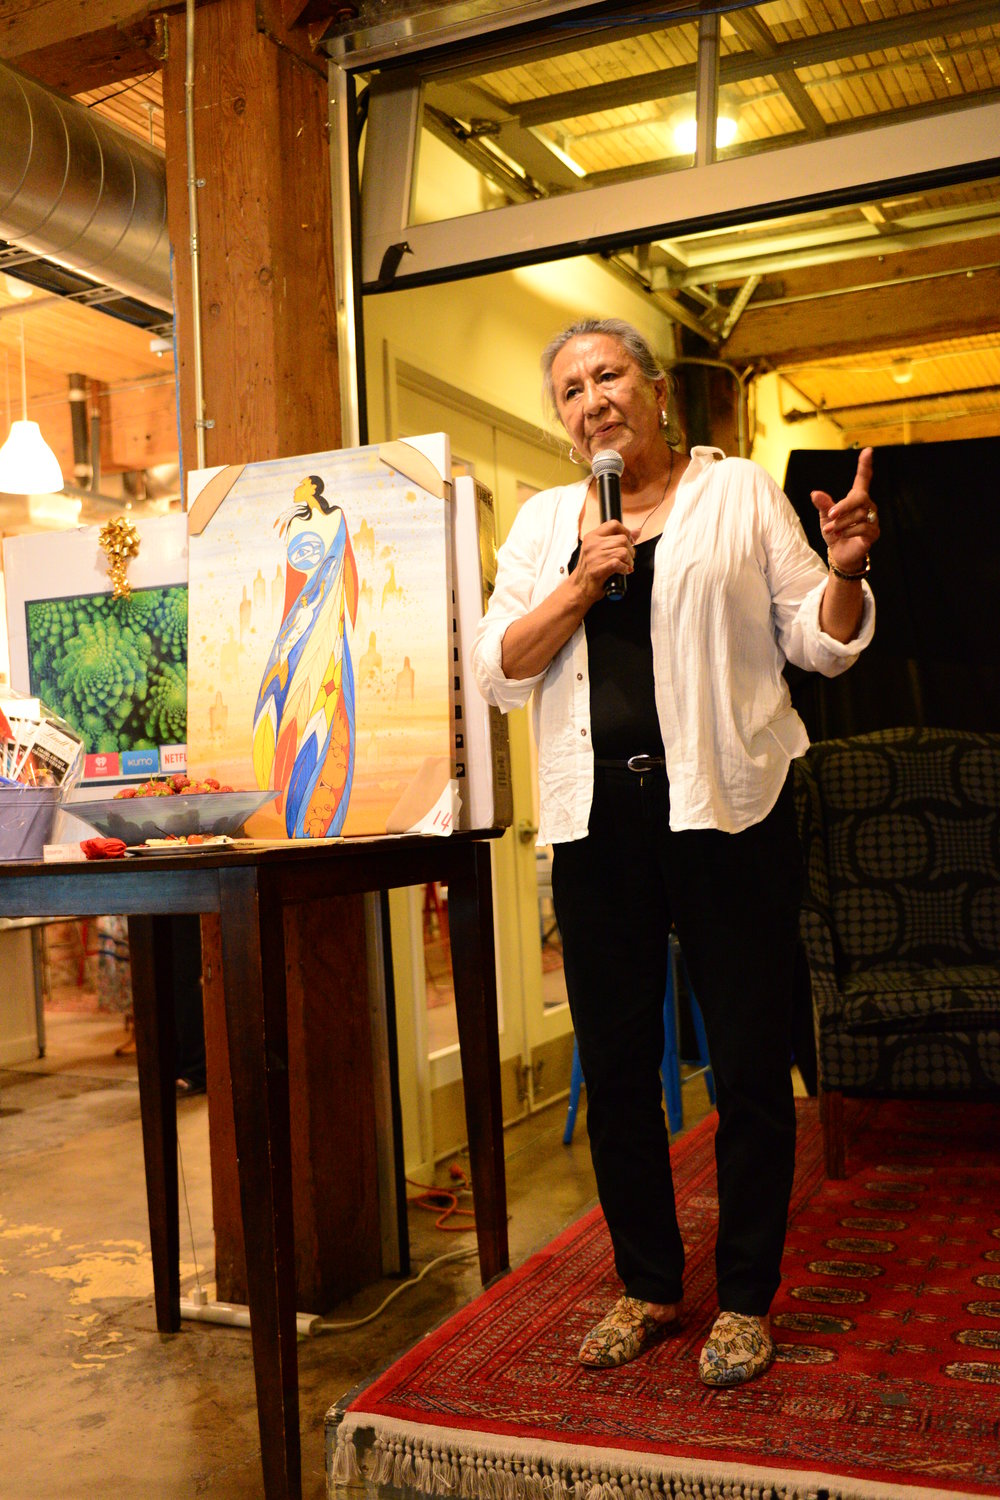 Maxine Noel explaining the significance behind her painting and #MMIW